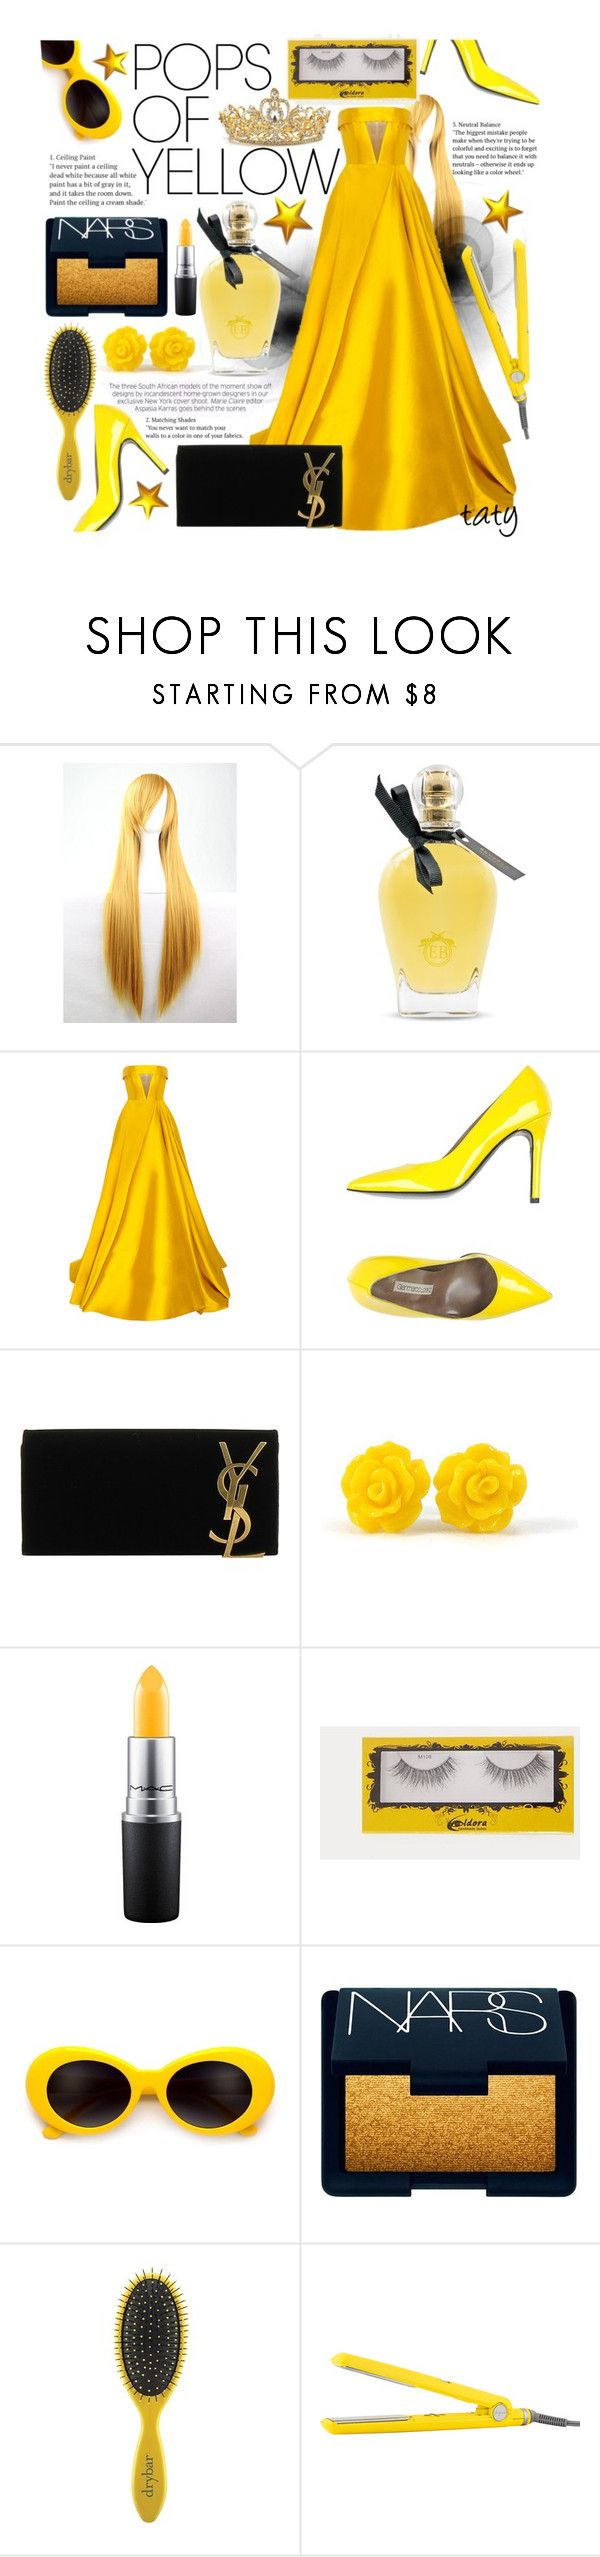 """Pops Of Yellow-Contest"" by joaquimsobreiro on Polyvore featuring WithChic, EB Florals, Alex Perry, Gianmarco Lorenzi, Yves Saint Laurent, John Lewis, NARS Cosmetics, Drybar, PopsOfYellow and NYFWYellow"